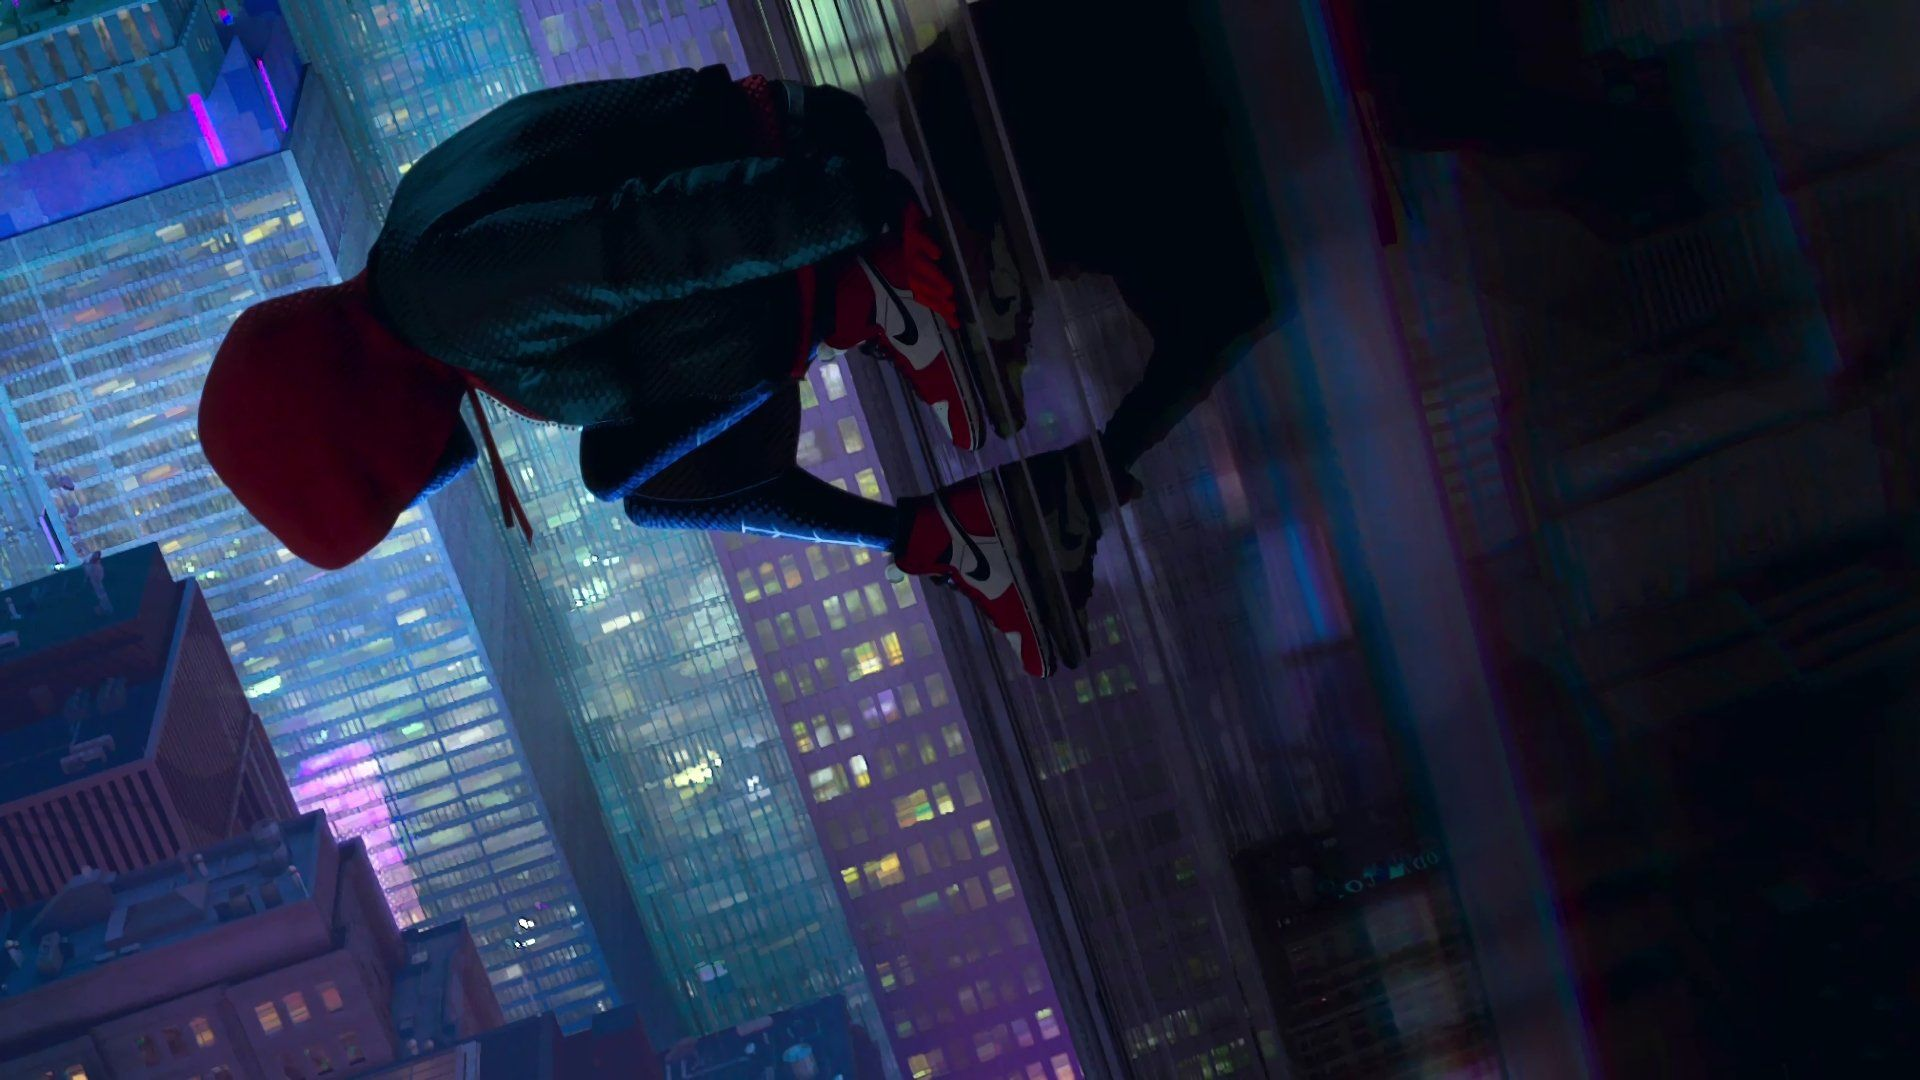 Spider Man Into The Spider Verse 4k Ultra Hd Wallpaper Background Image 3840x2160 Id 934713 Wallpaper A In 2020 Spider Verse Marvel Wallpaper Movie Wallpapers